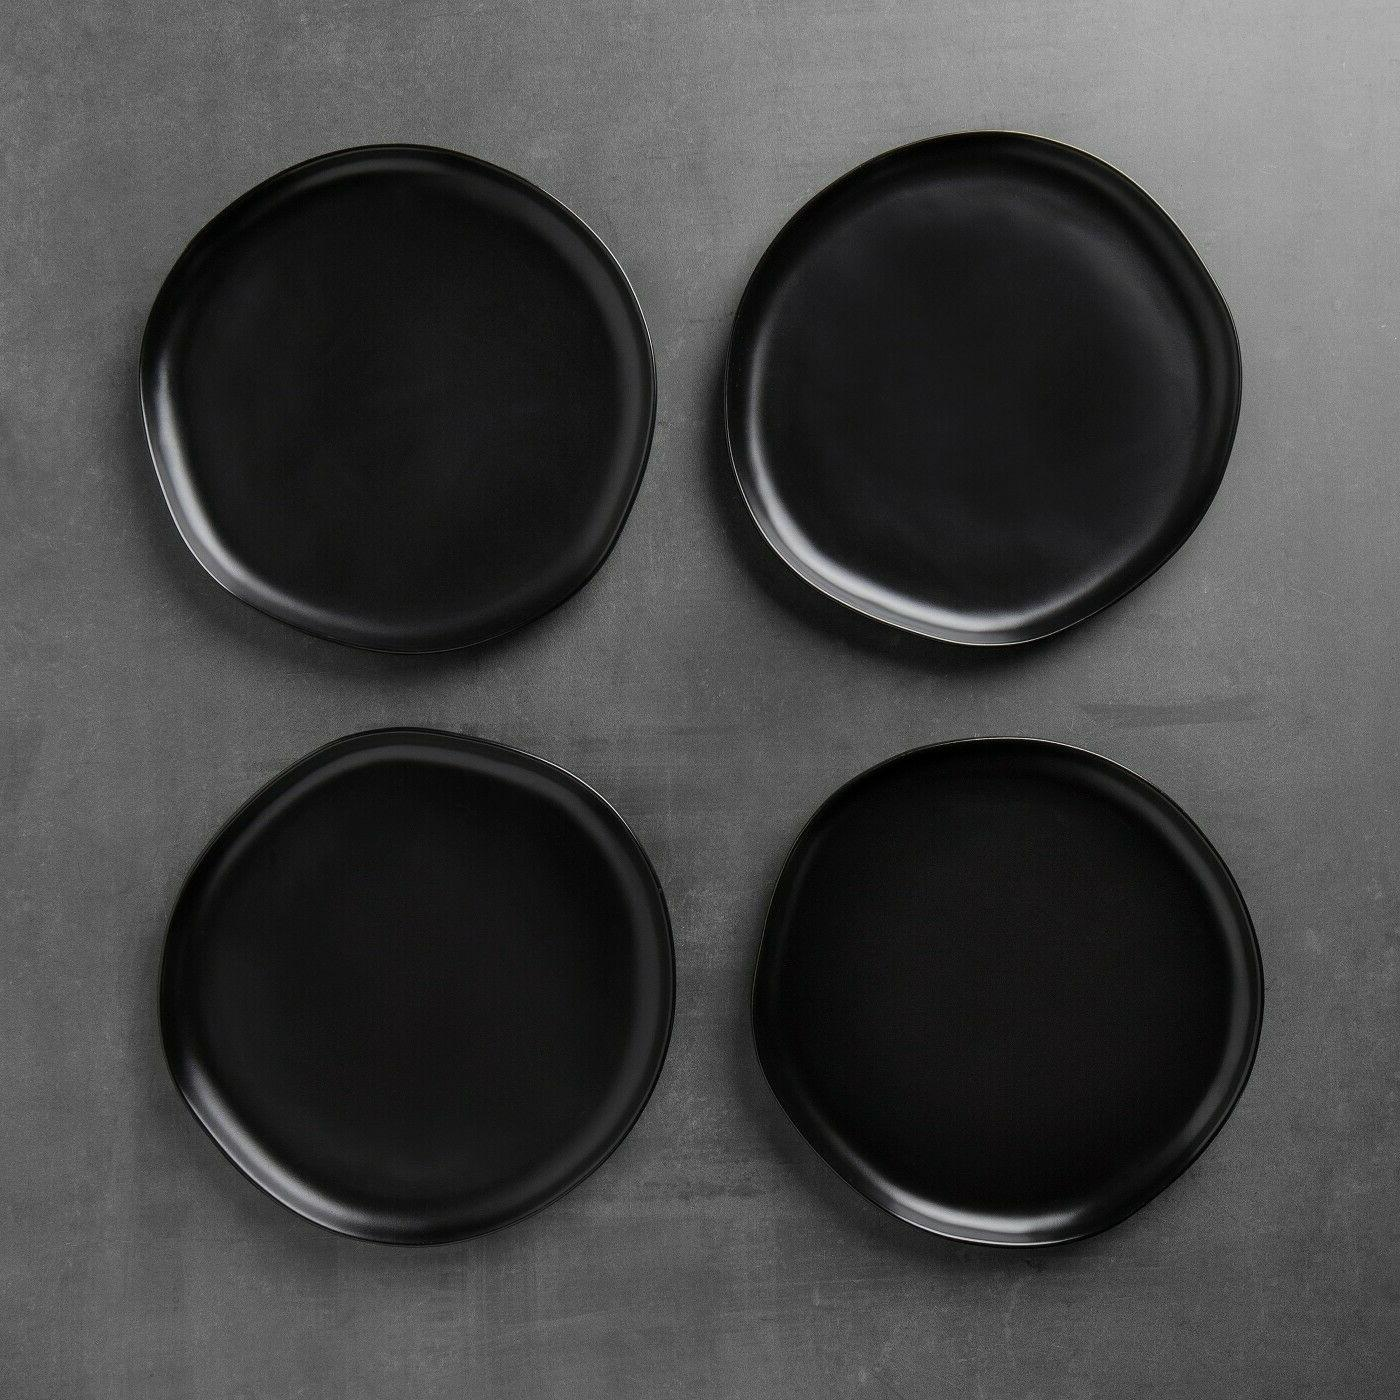 "Hearth Magnolia Black Matte Plates 10""- 2"